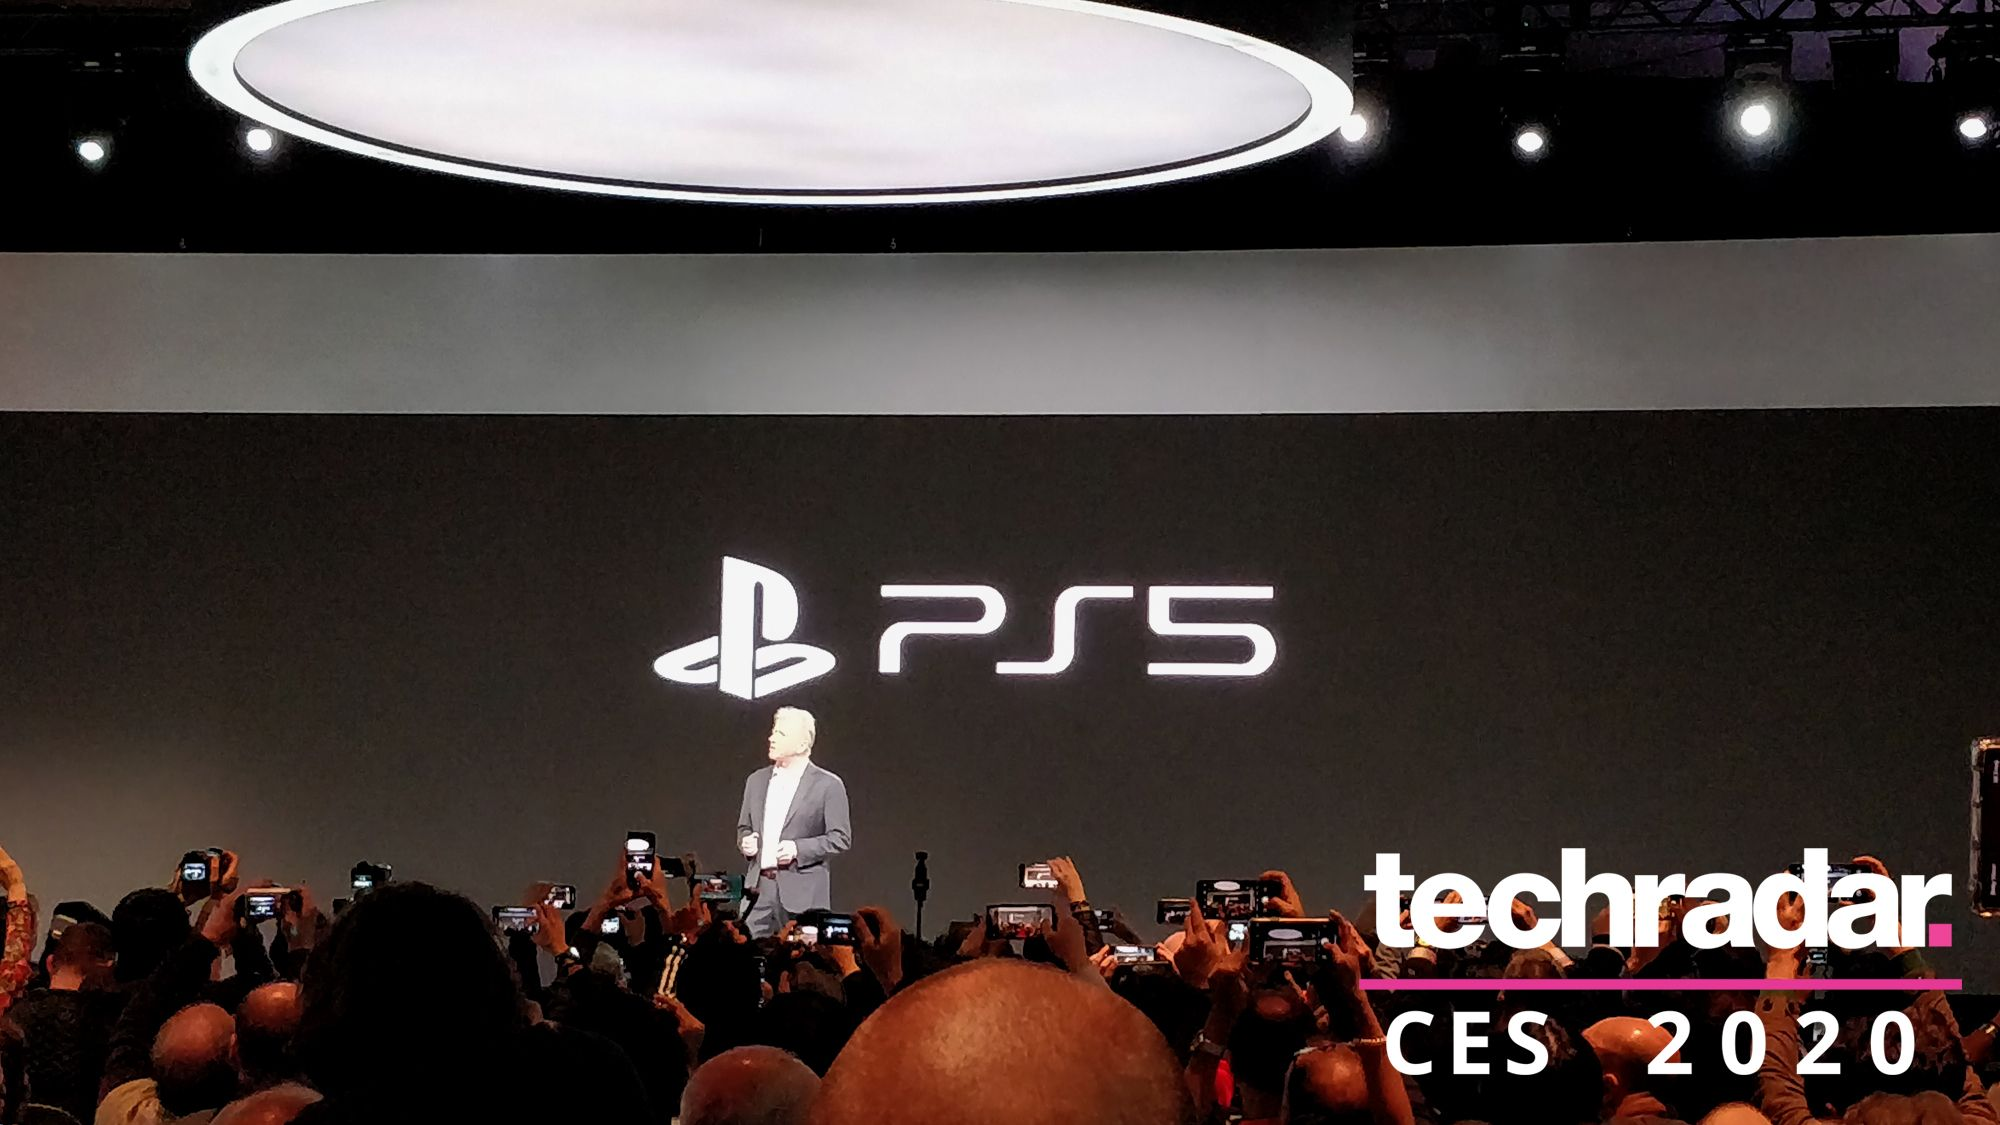 Sony's rumored PS5 announcement at CES 2020 was a dud in